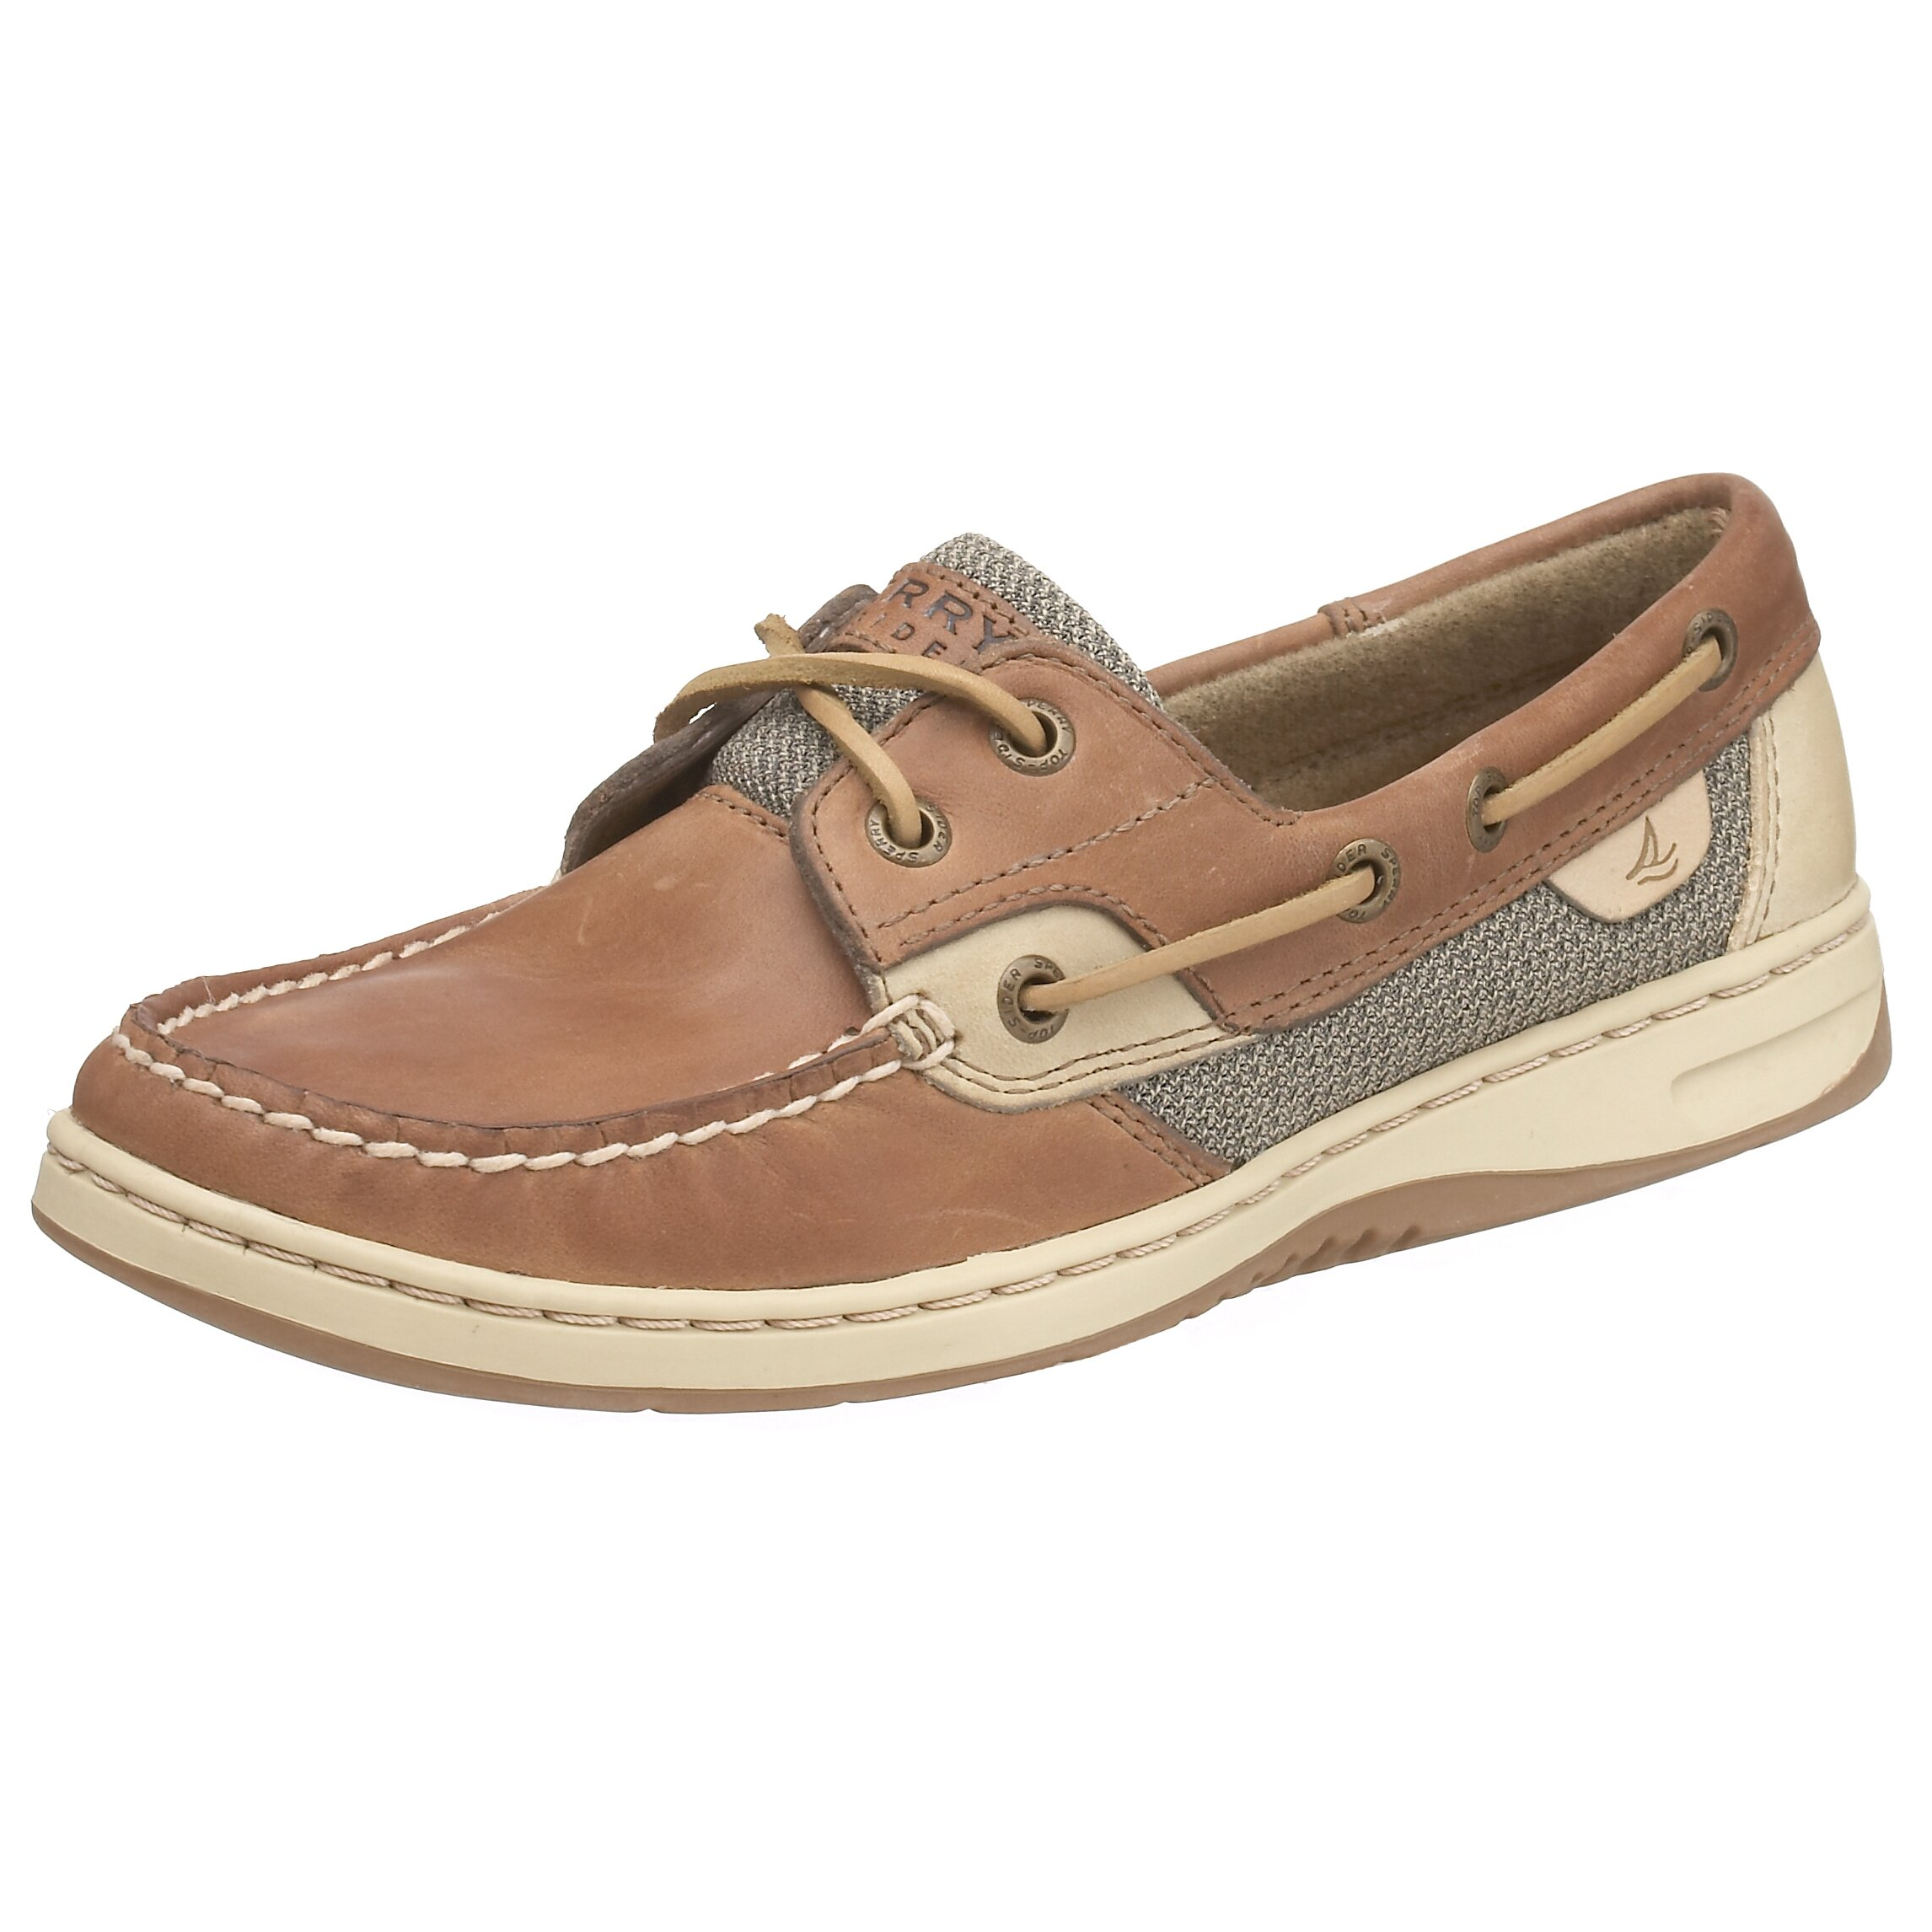 Sperry Top-Sider Women's Bluefish,Linen/Oat,8 M US